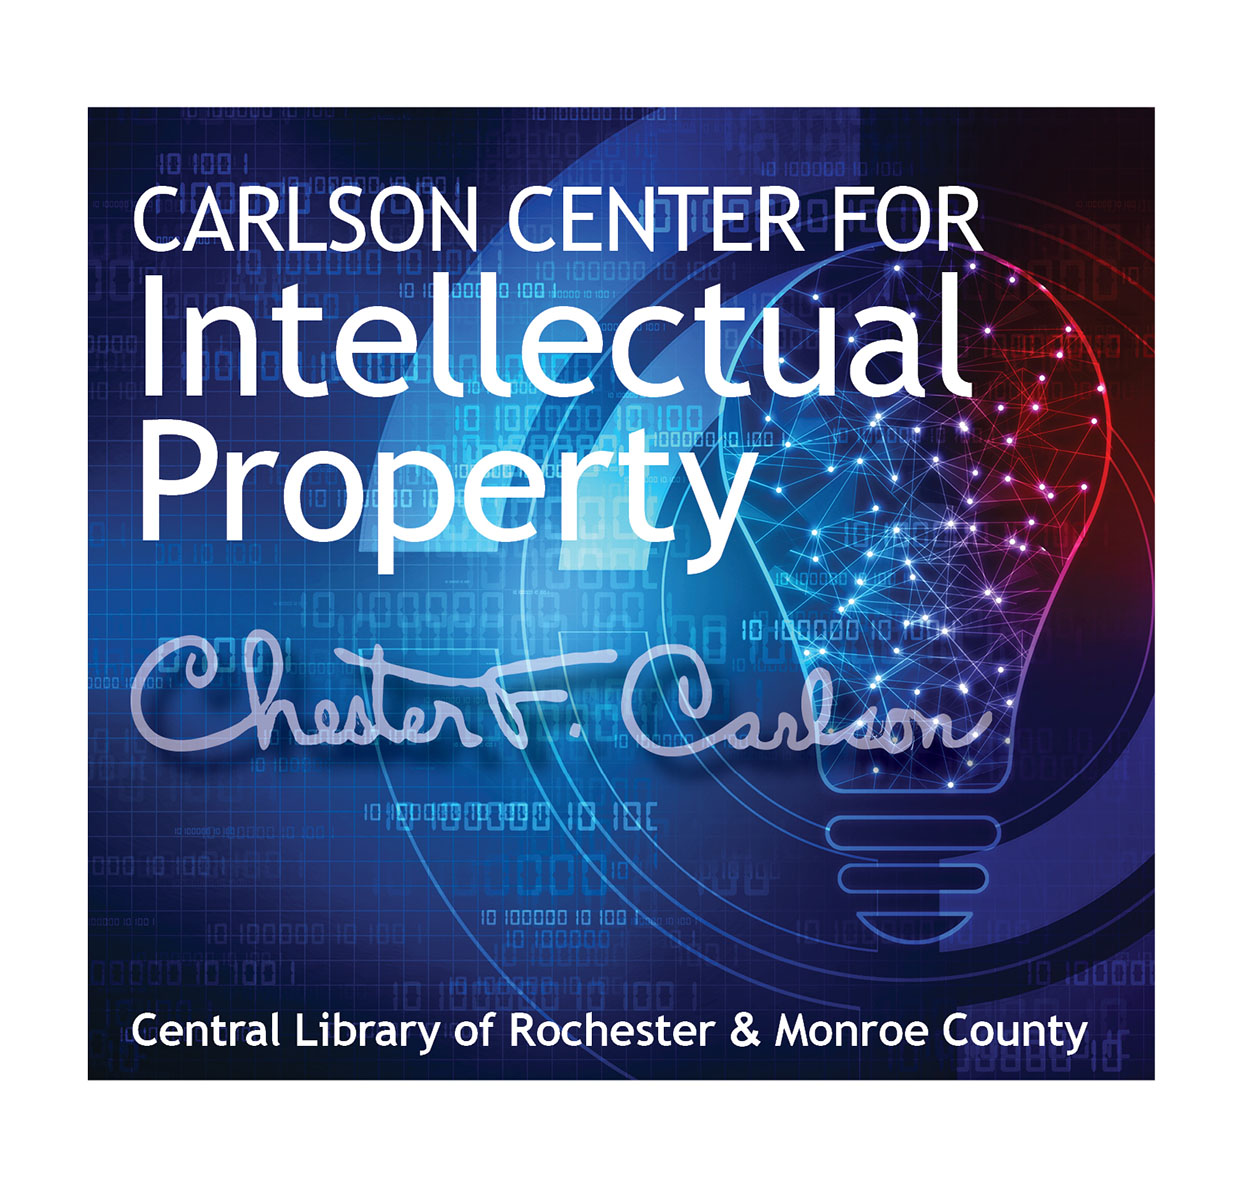 20th Anniversary Celebration - Carlson Center for Intellectual Property